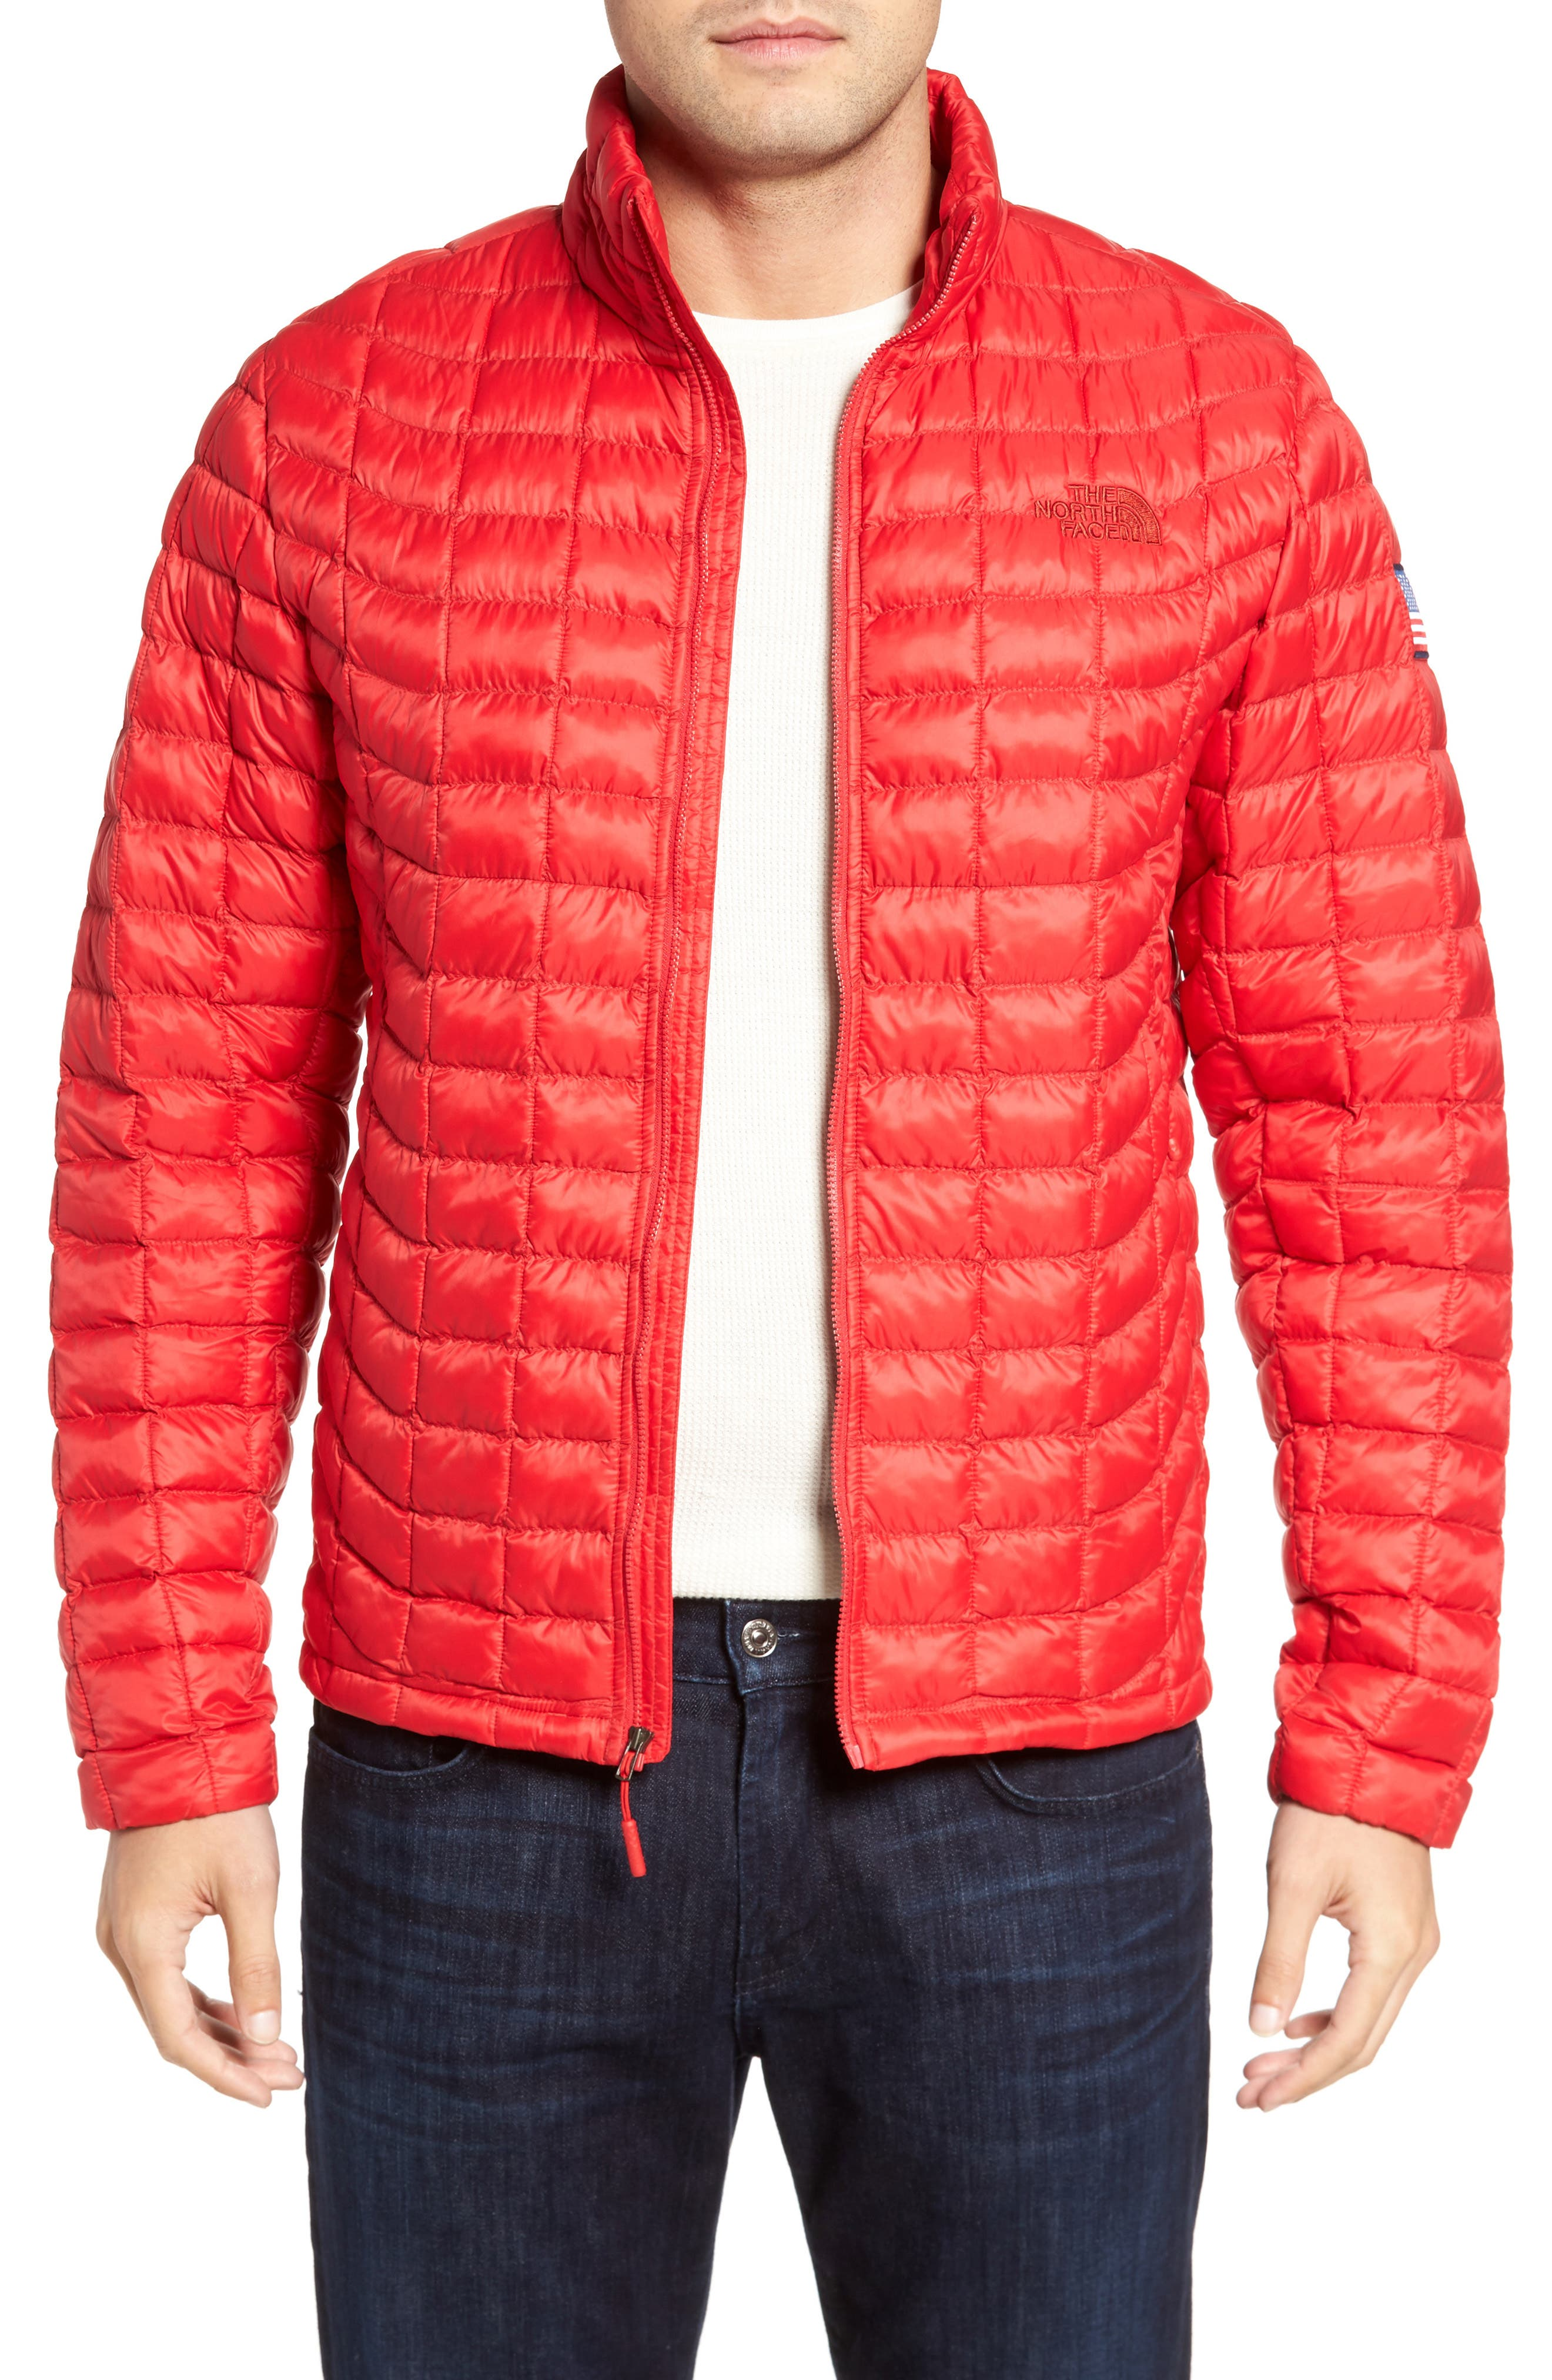 International Collection ThermoBall PrimaLoft<sup>®</sup> Jacket,                             Main thumbnail 1, color,                             Red